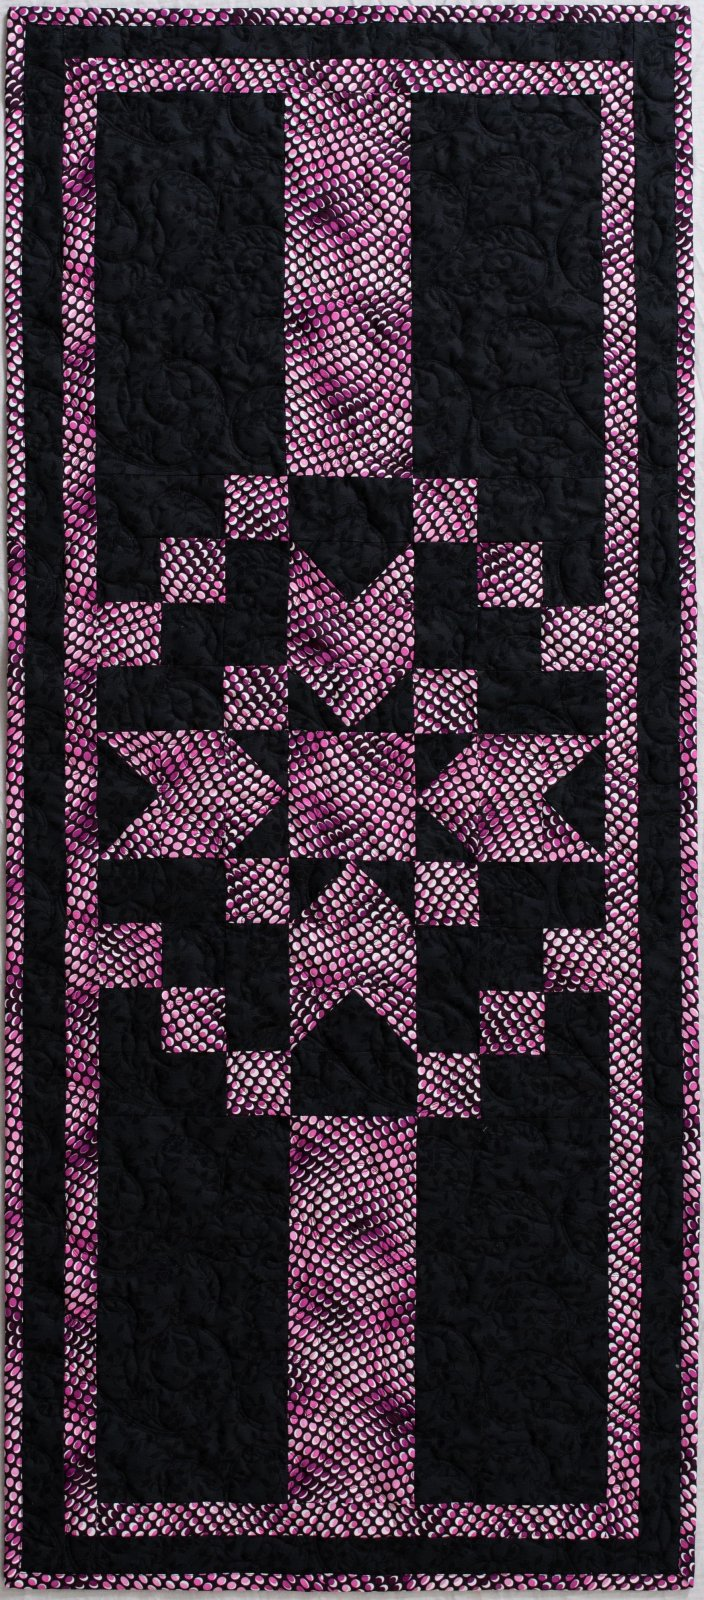 Star-Crossed Table Runner Pattern